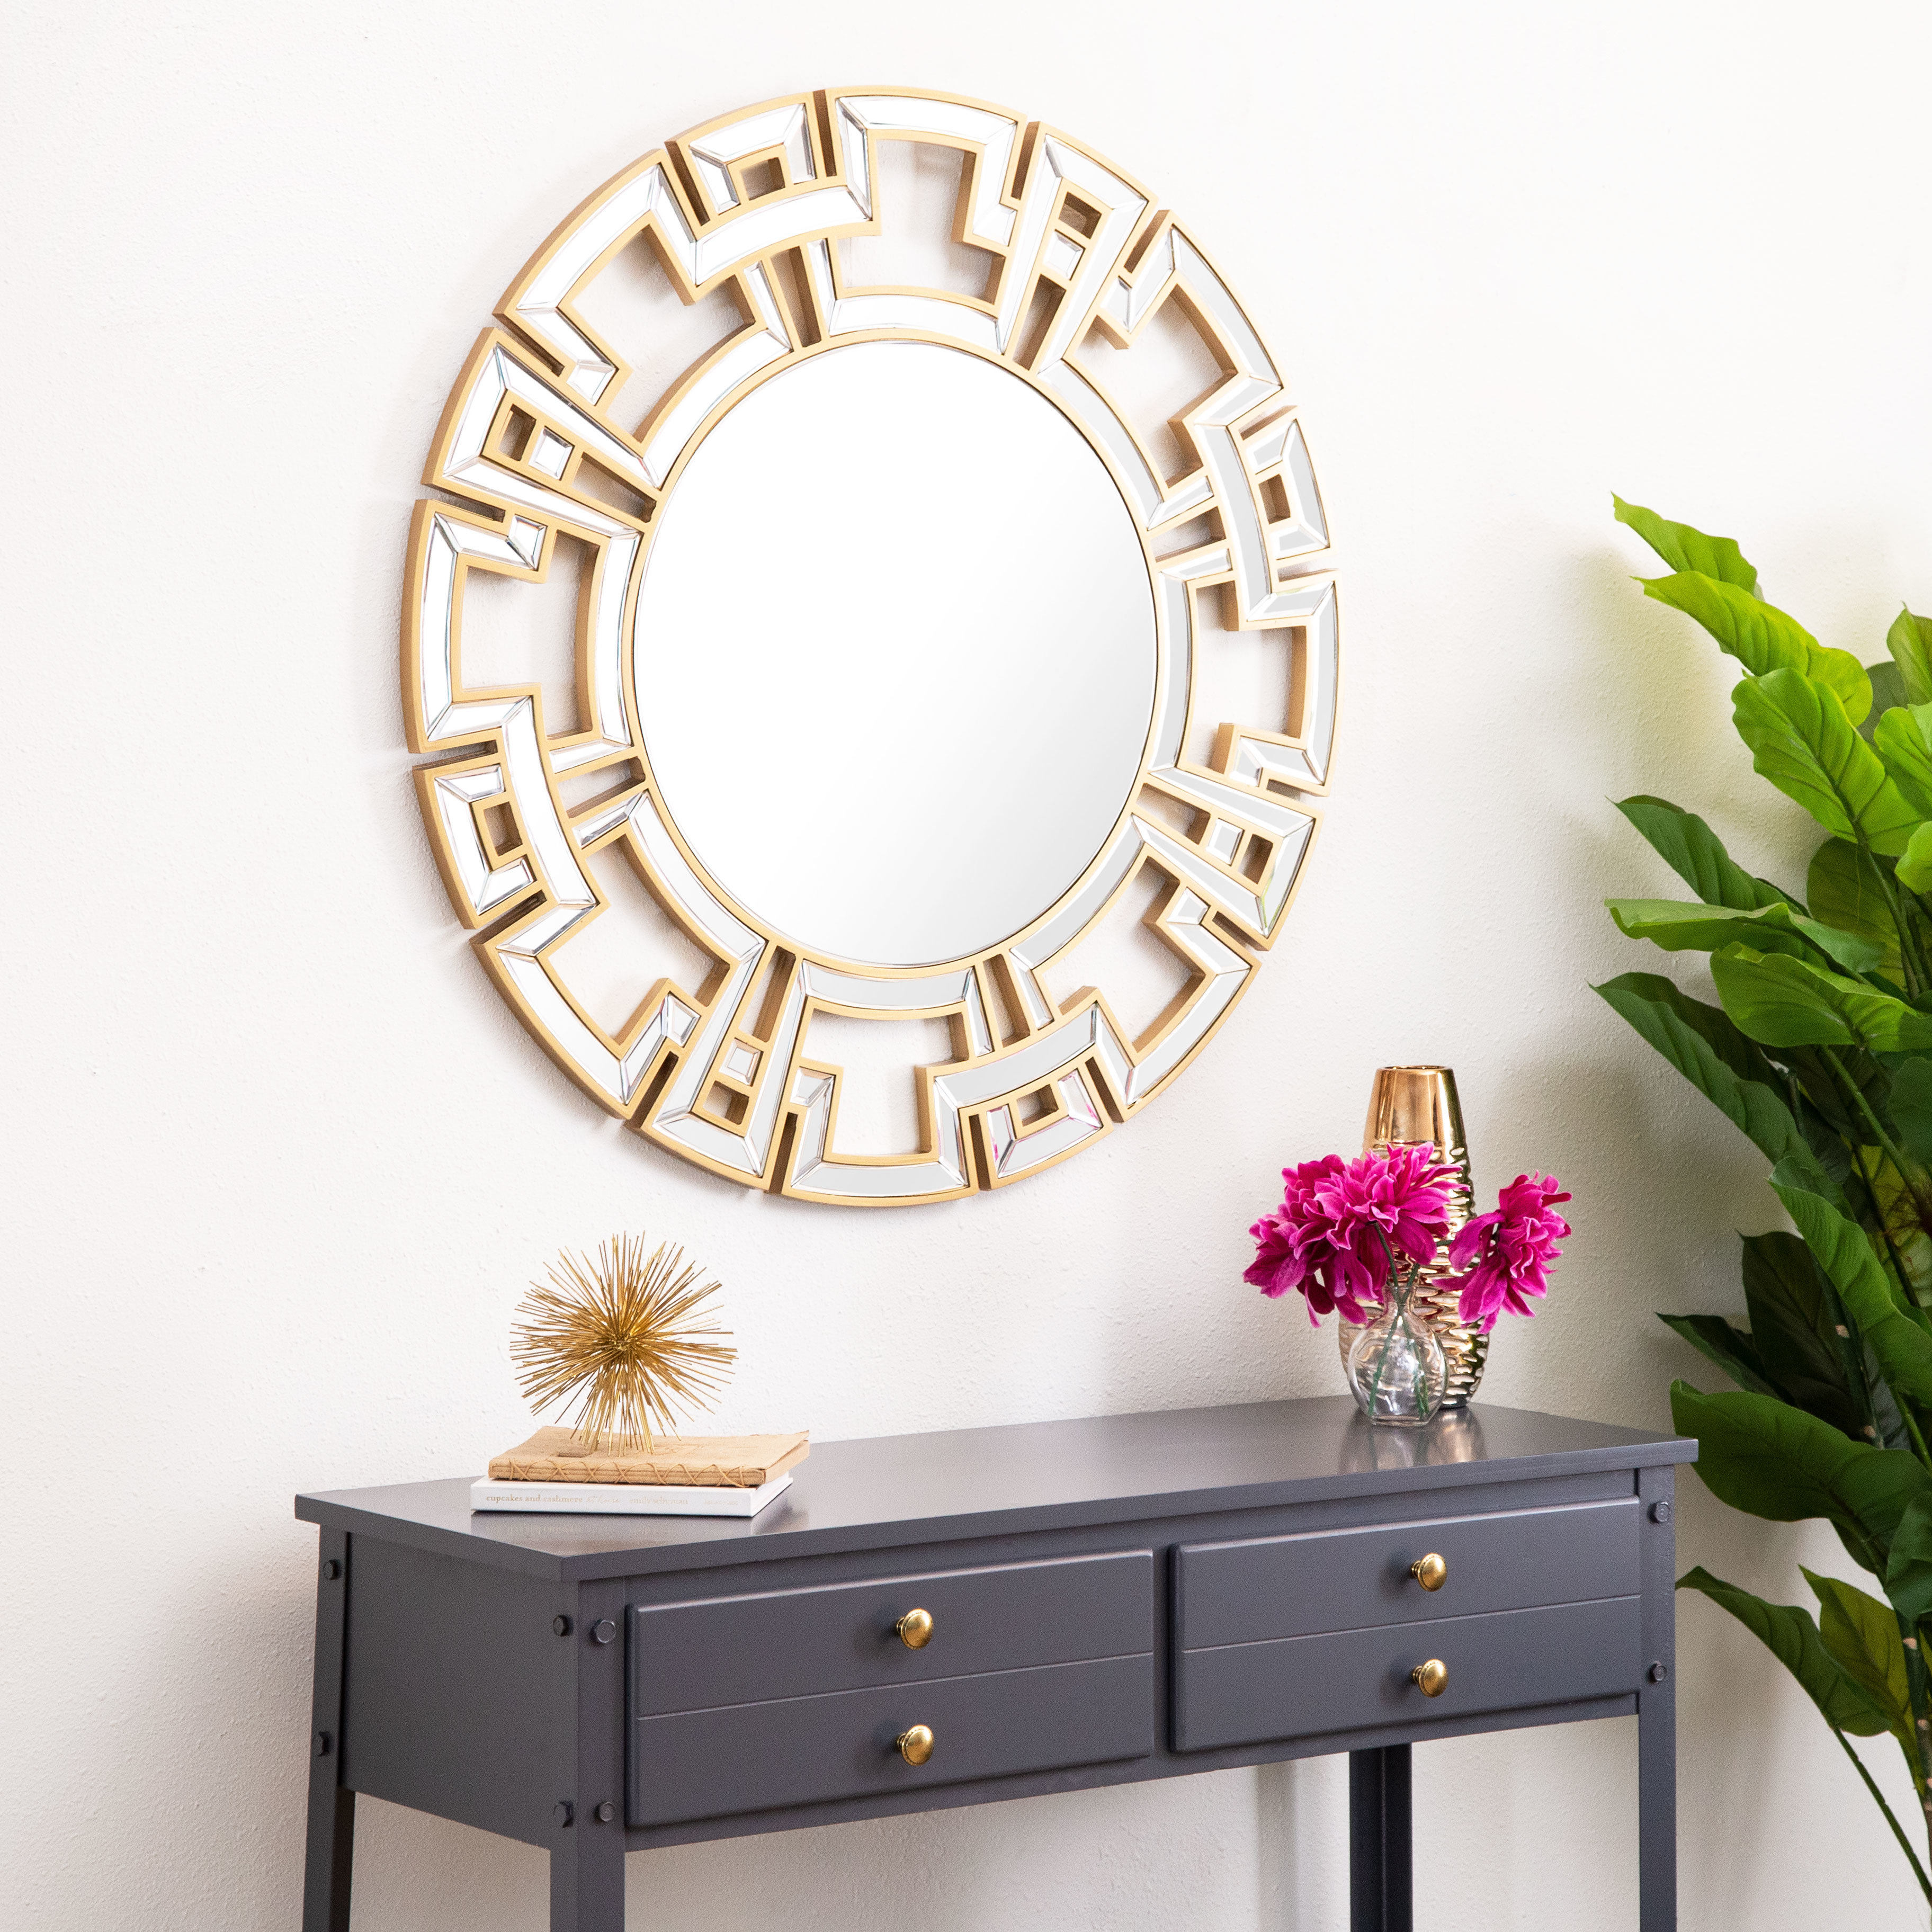 Modern & Contemporary Kentwood Round Wall Mirror | Allmodern Within Kentwood Round Wall Mirrors (View 10 of 20)